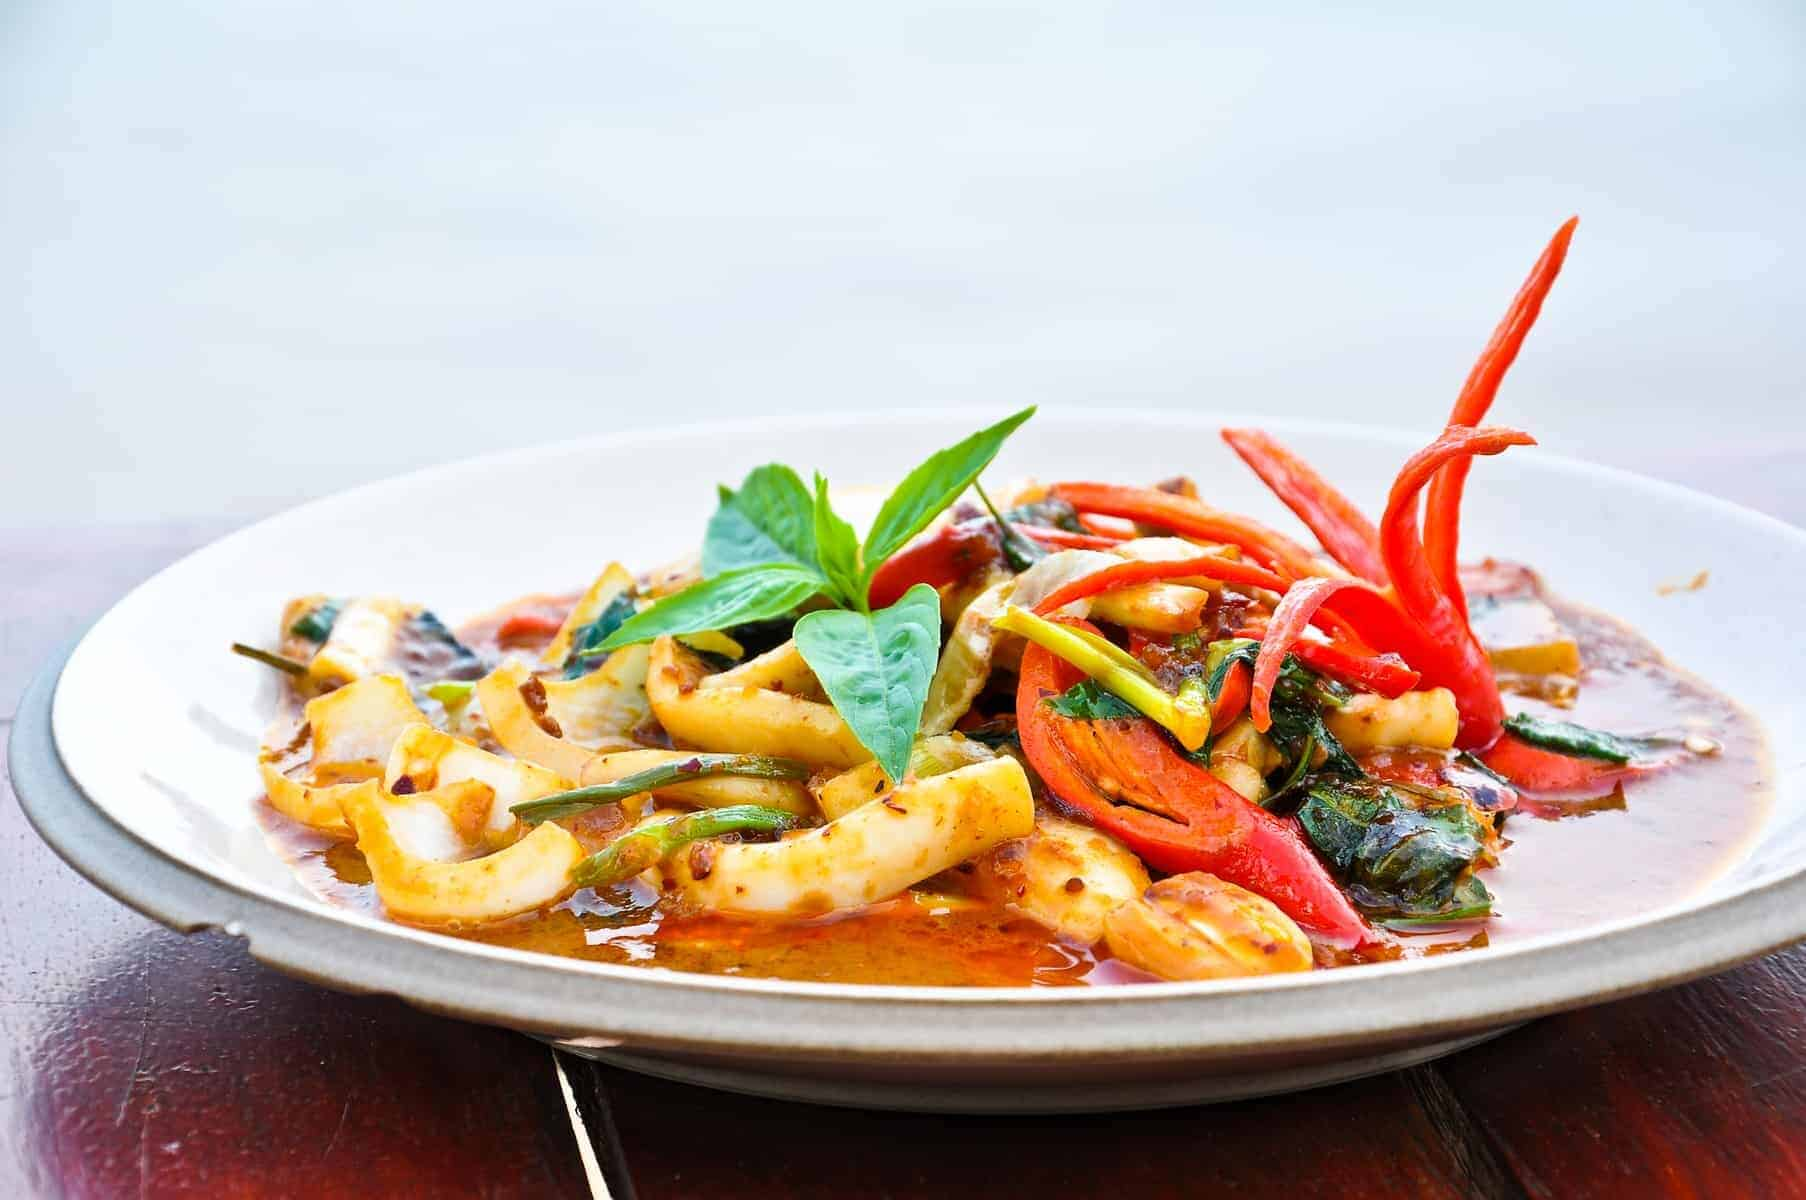 Thai food, octopus in curry sauce